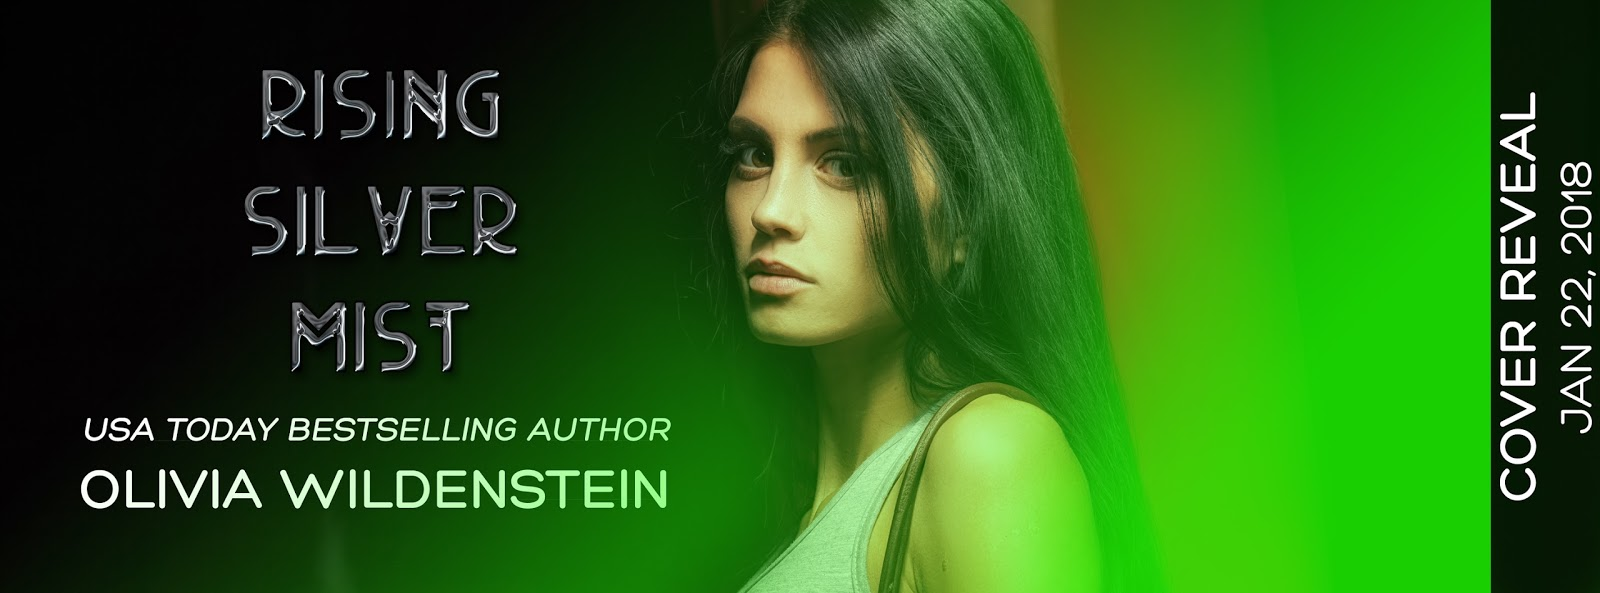 Book promotions the adventures of sacakat rising silver mist cover reveal fandeluxe Image collections